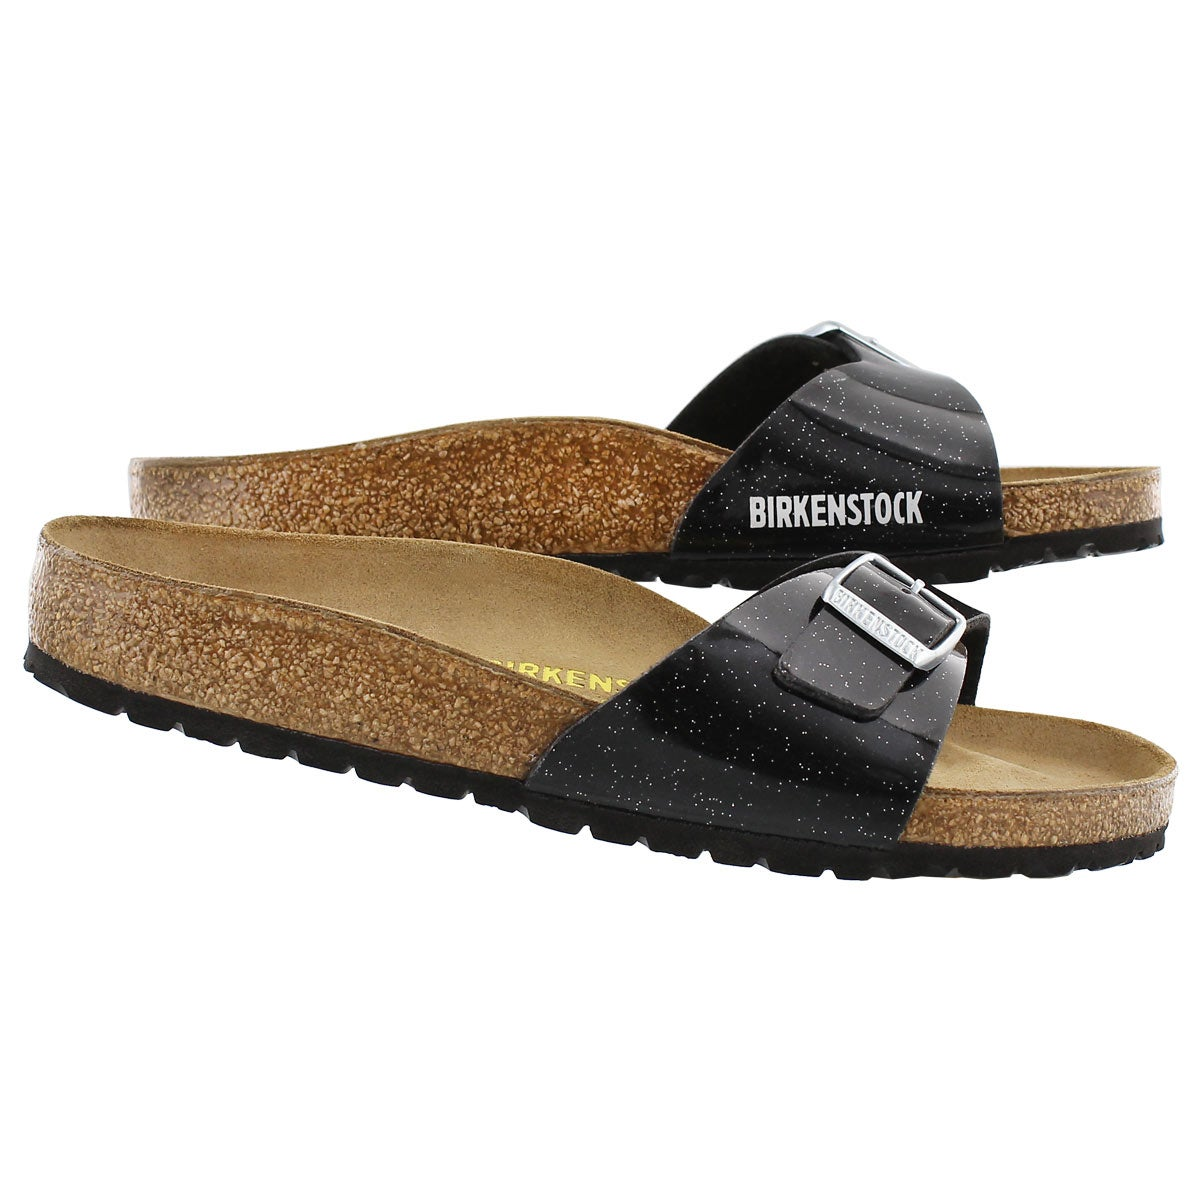 Lds Madrid magic galaxy blk slide sandal